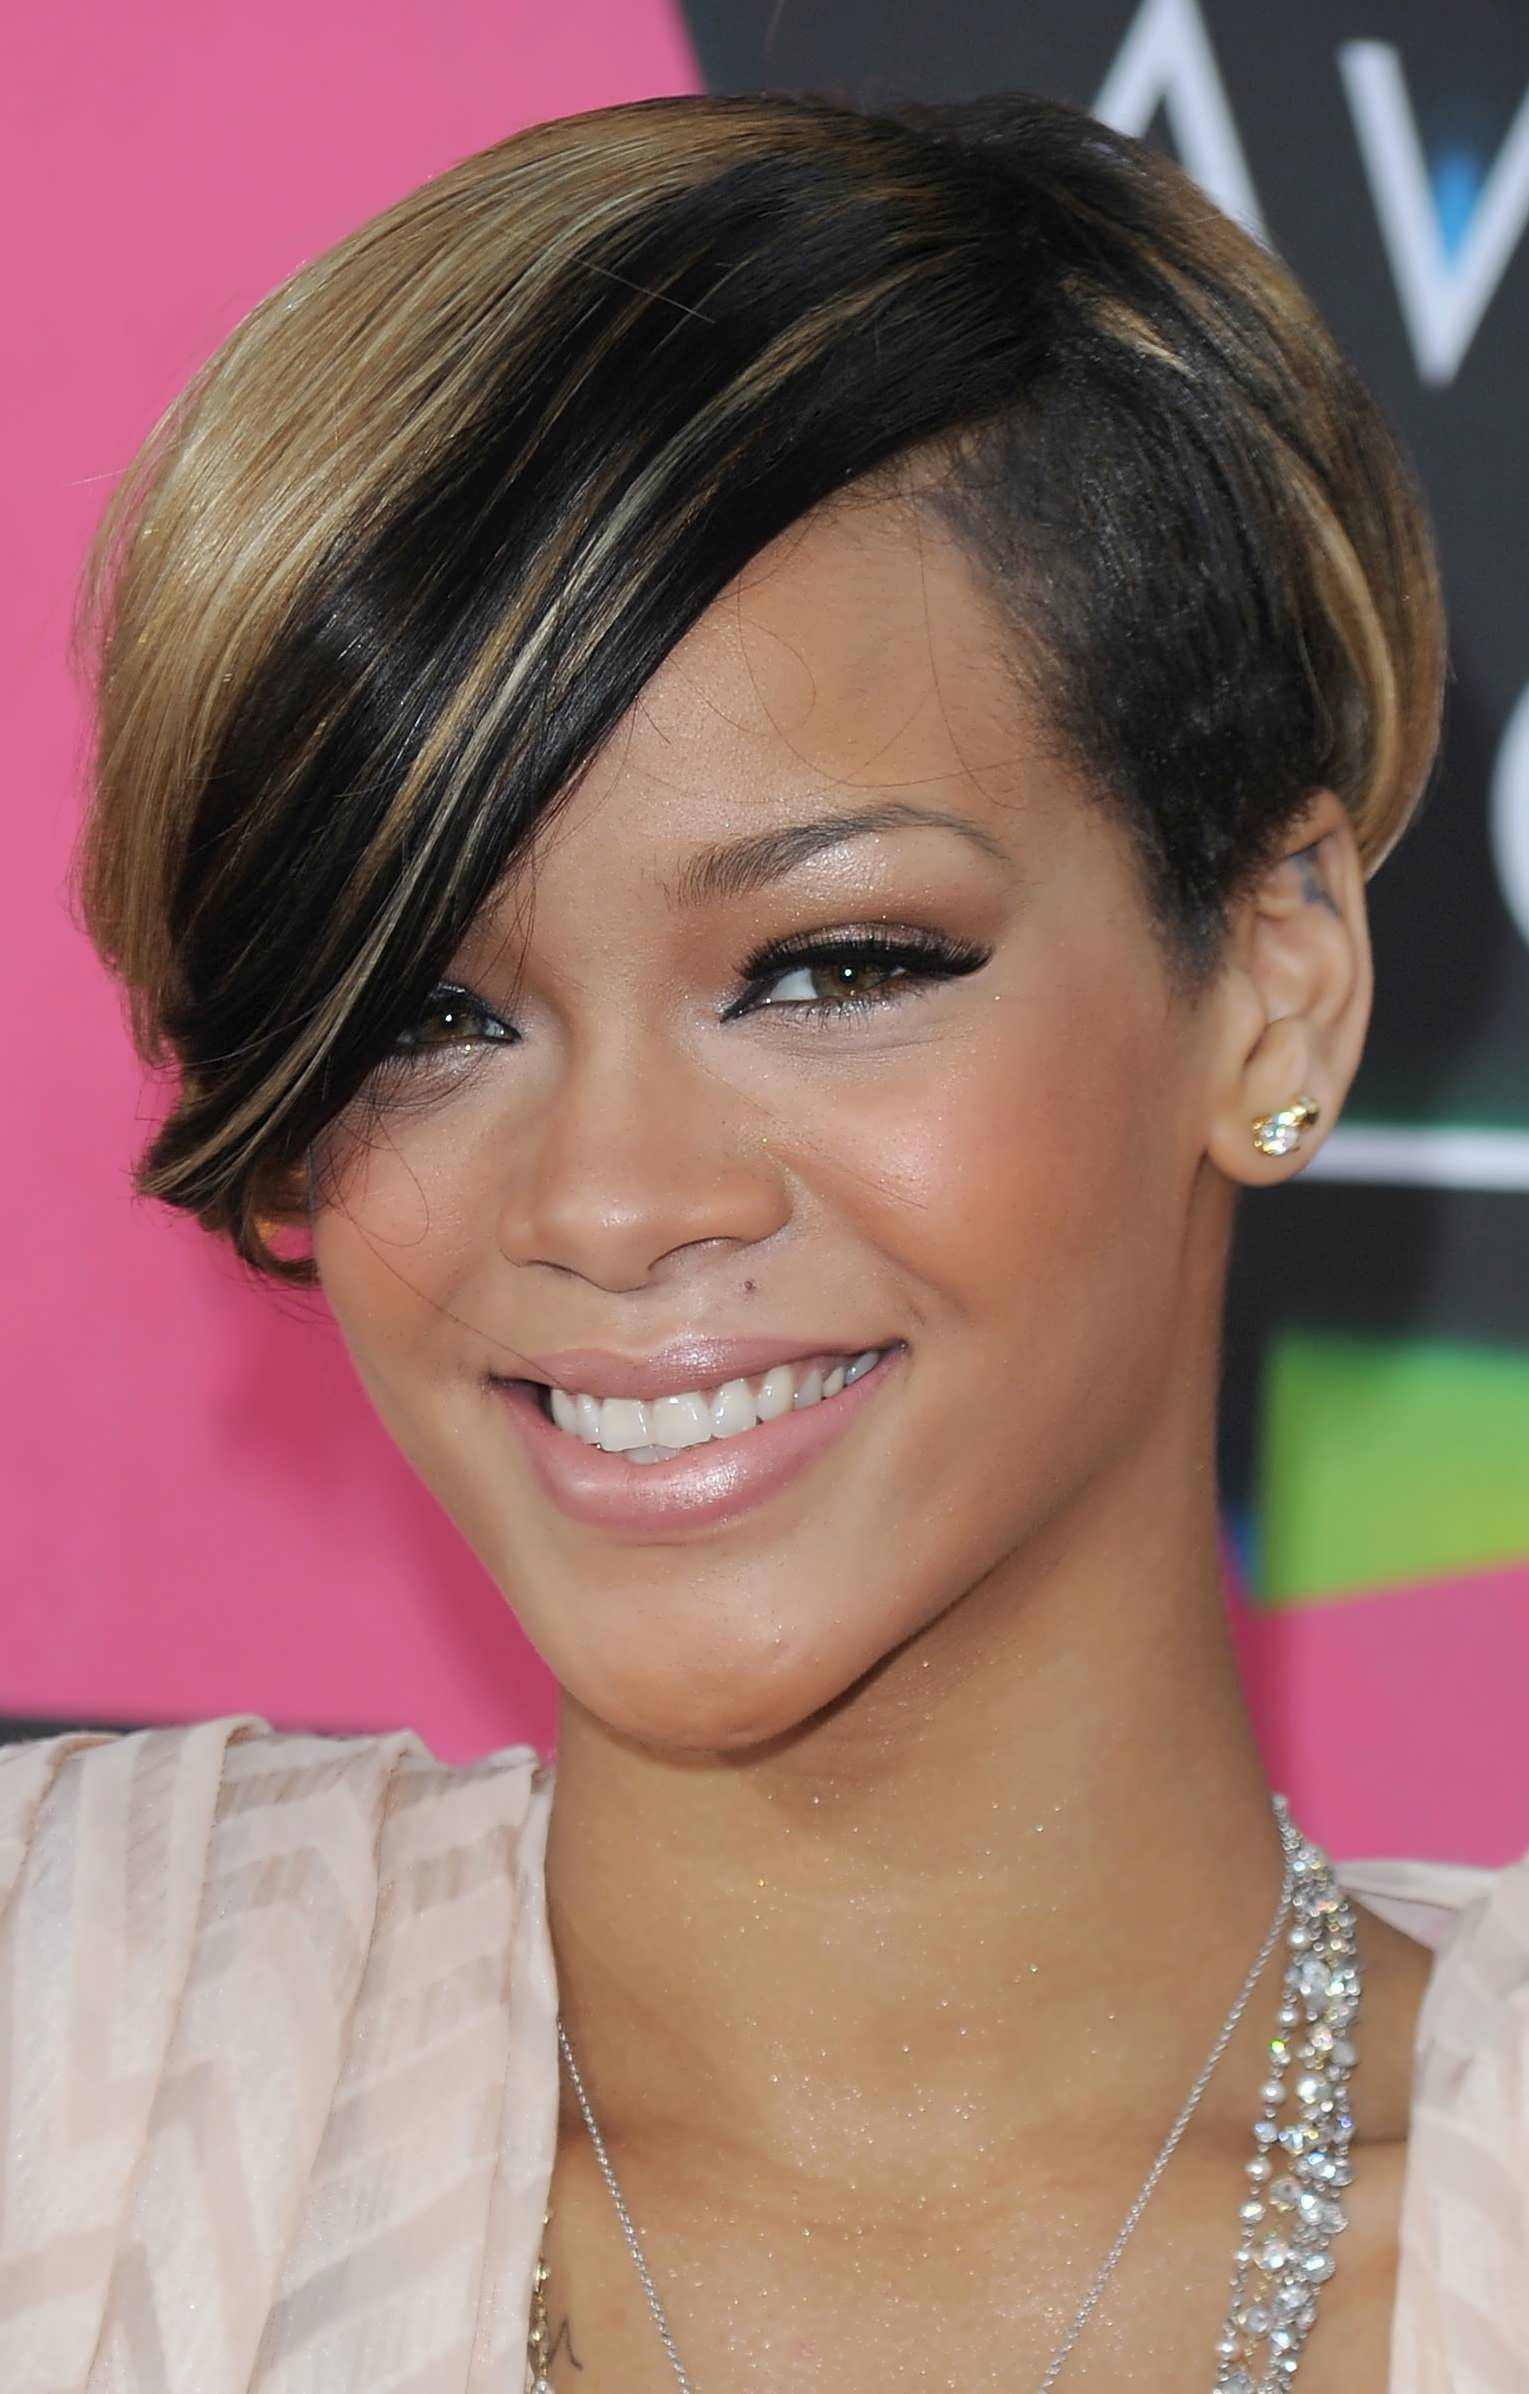 Beautiful Short Length Hairstyles For Round Faces Styles